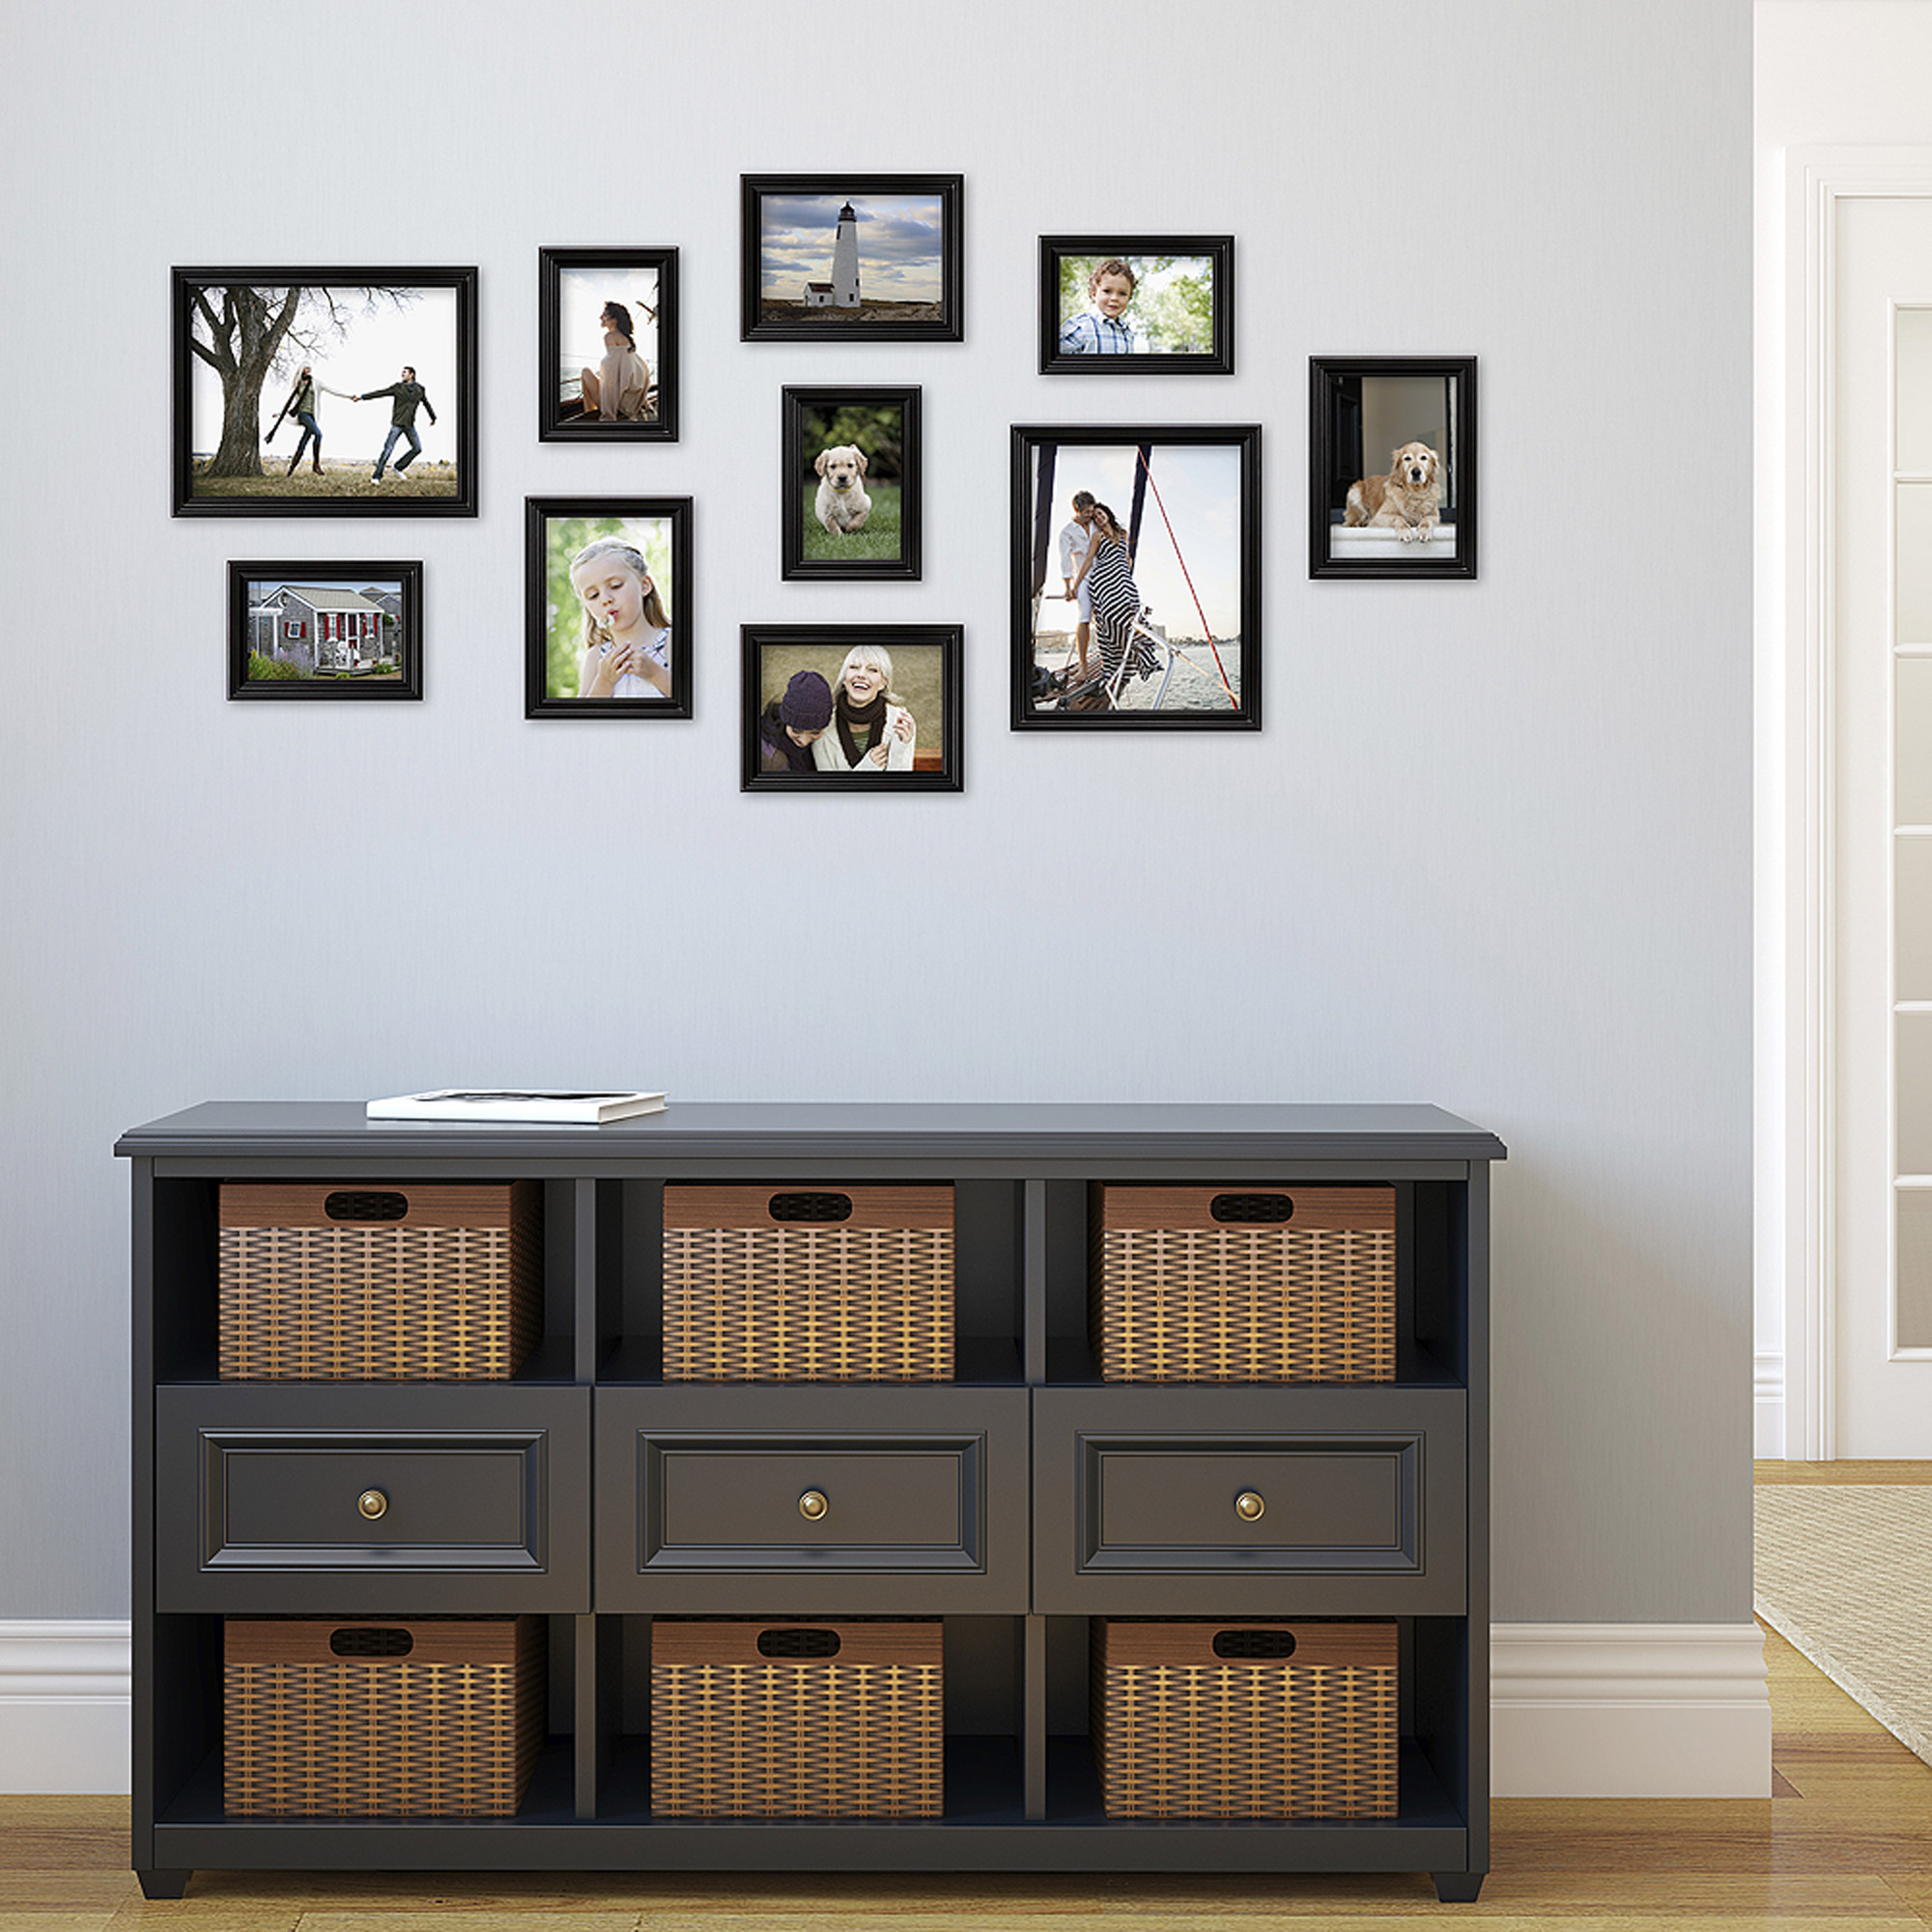 traditional black wood frame set set of 10 walmartcom